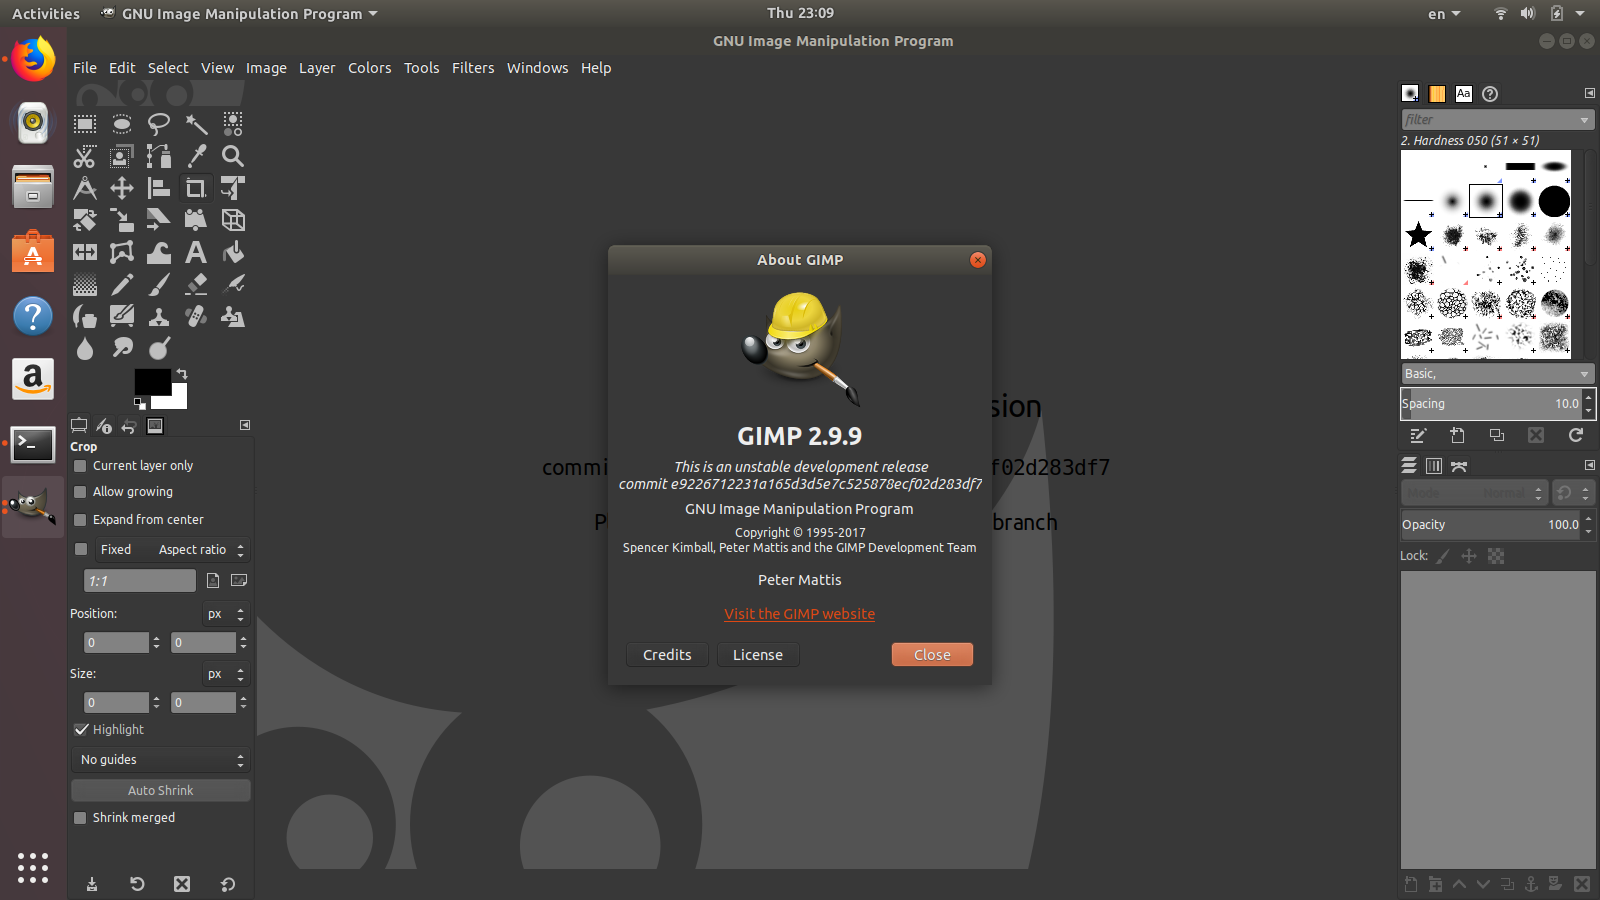 How to Install GIMP 2 9 8 (2 9 9) Release on Ubuntu 16 04, 17 04